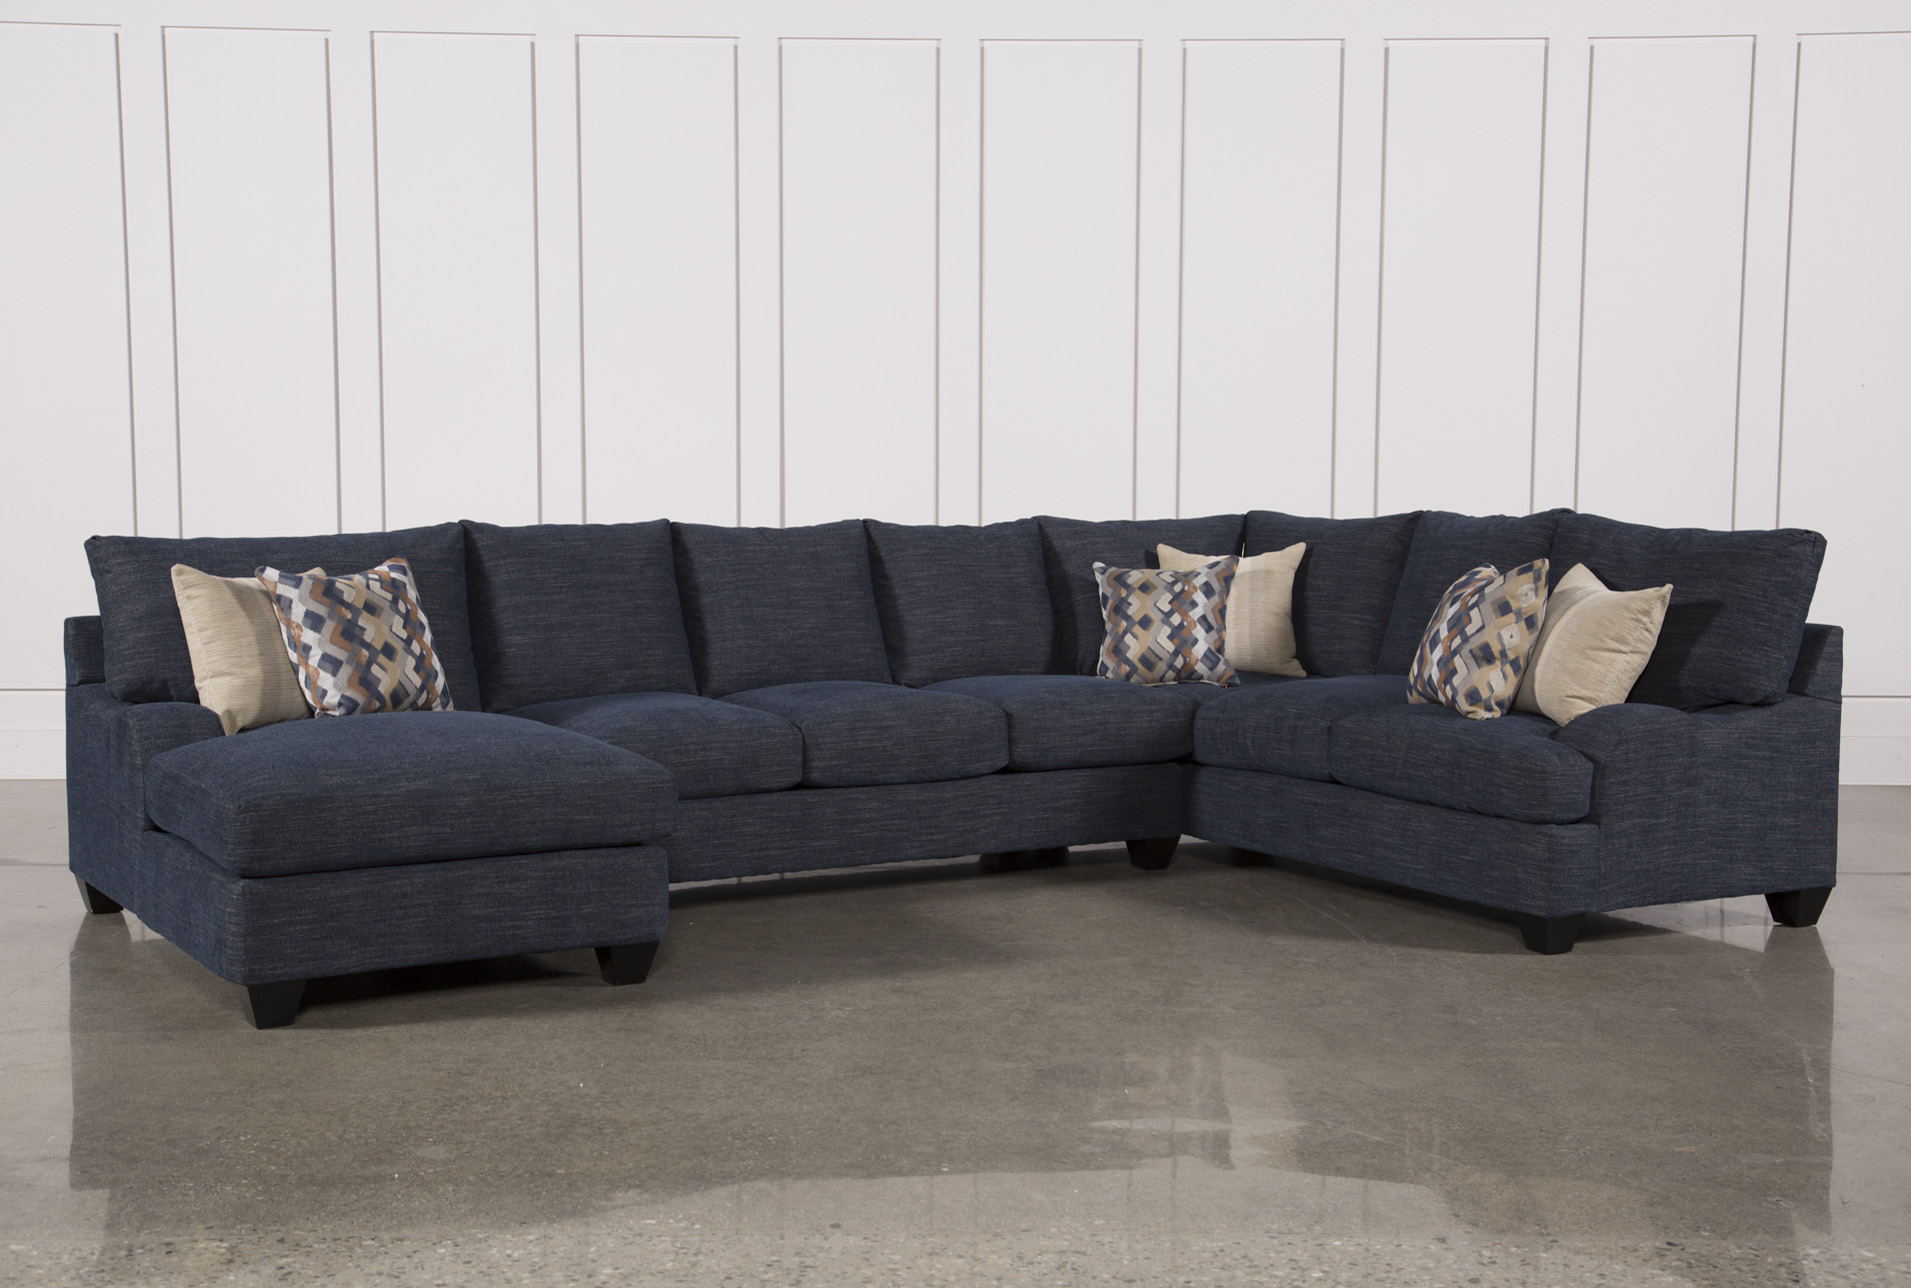 Sierra Down 3 Piece Sectional W/Laf Chaise   360